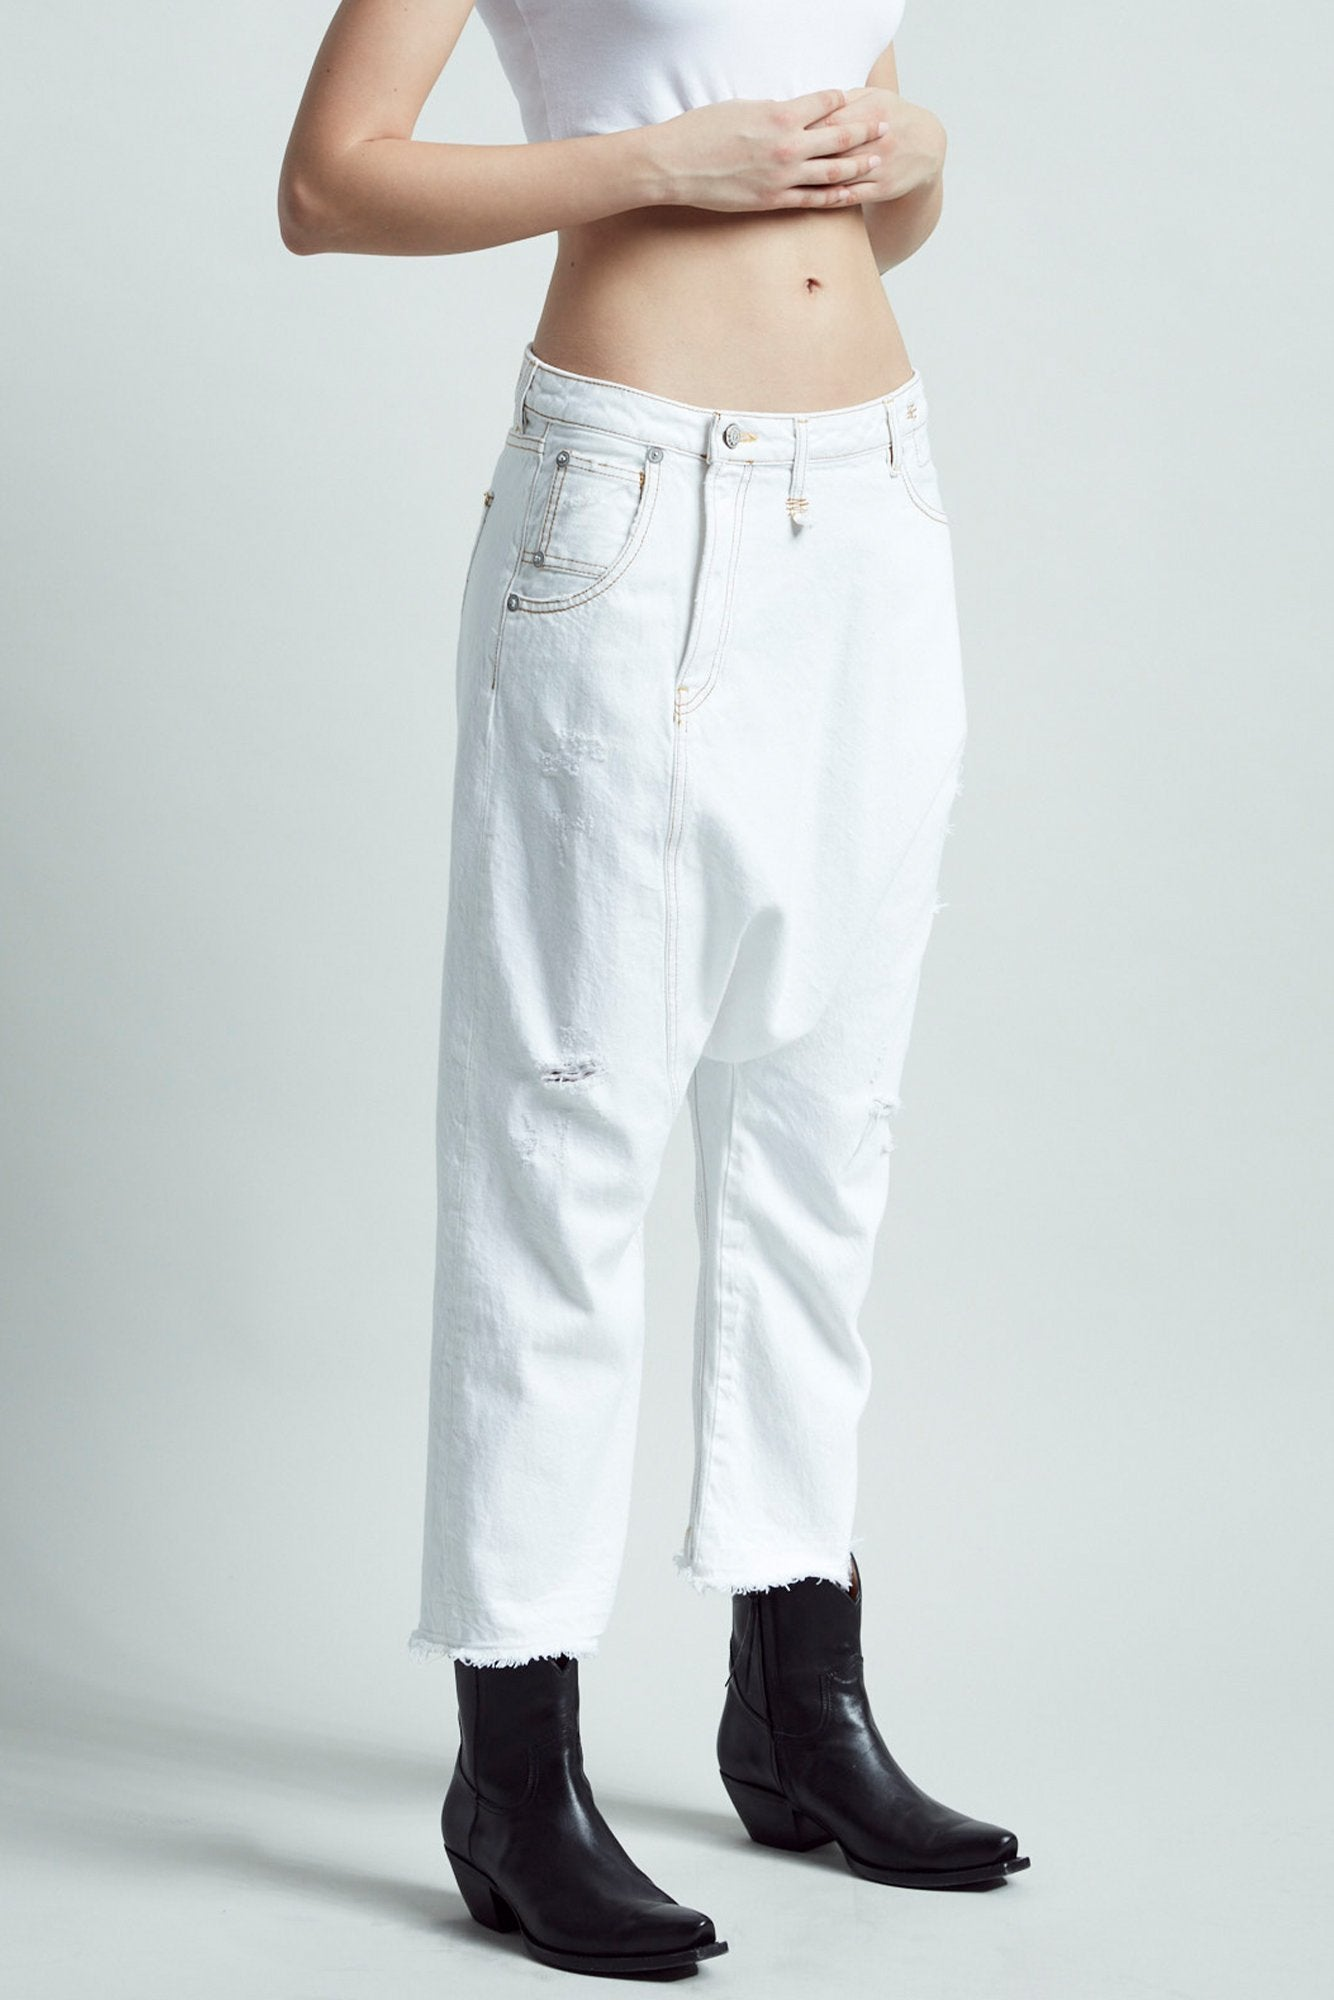 Twister Jean - Caspar White